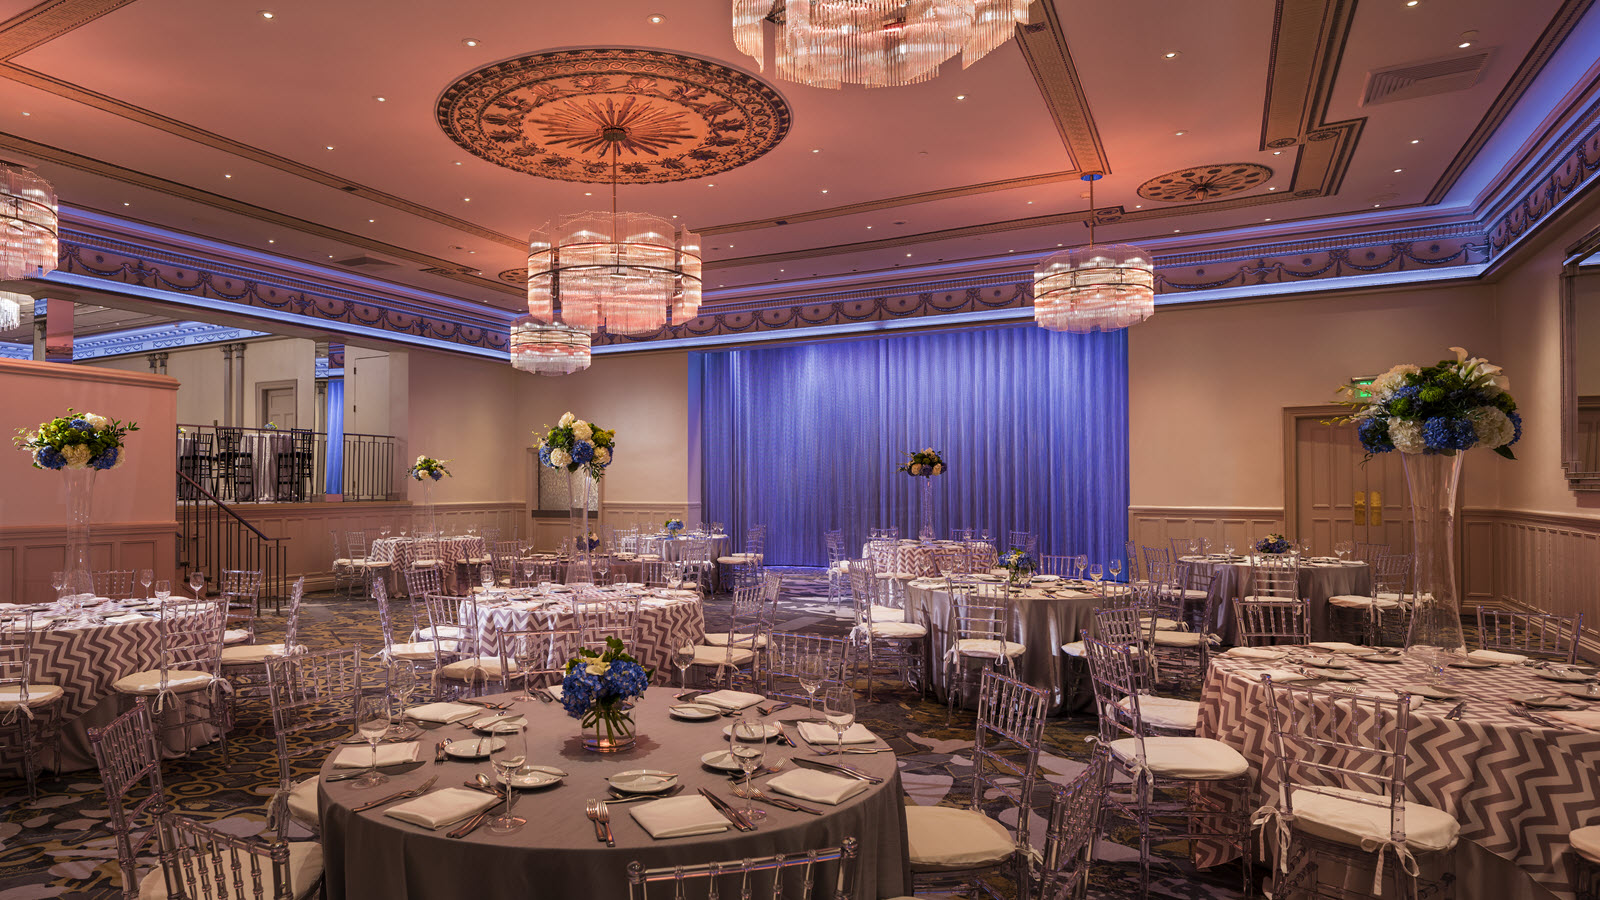 Cambridge Wedding Venue - George Washington Ballroom